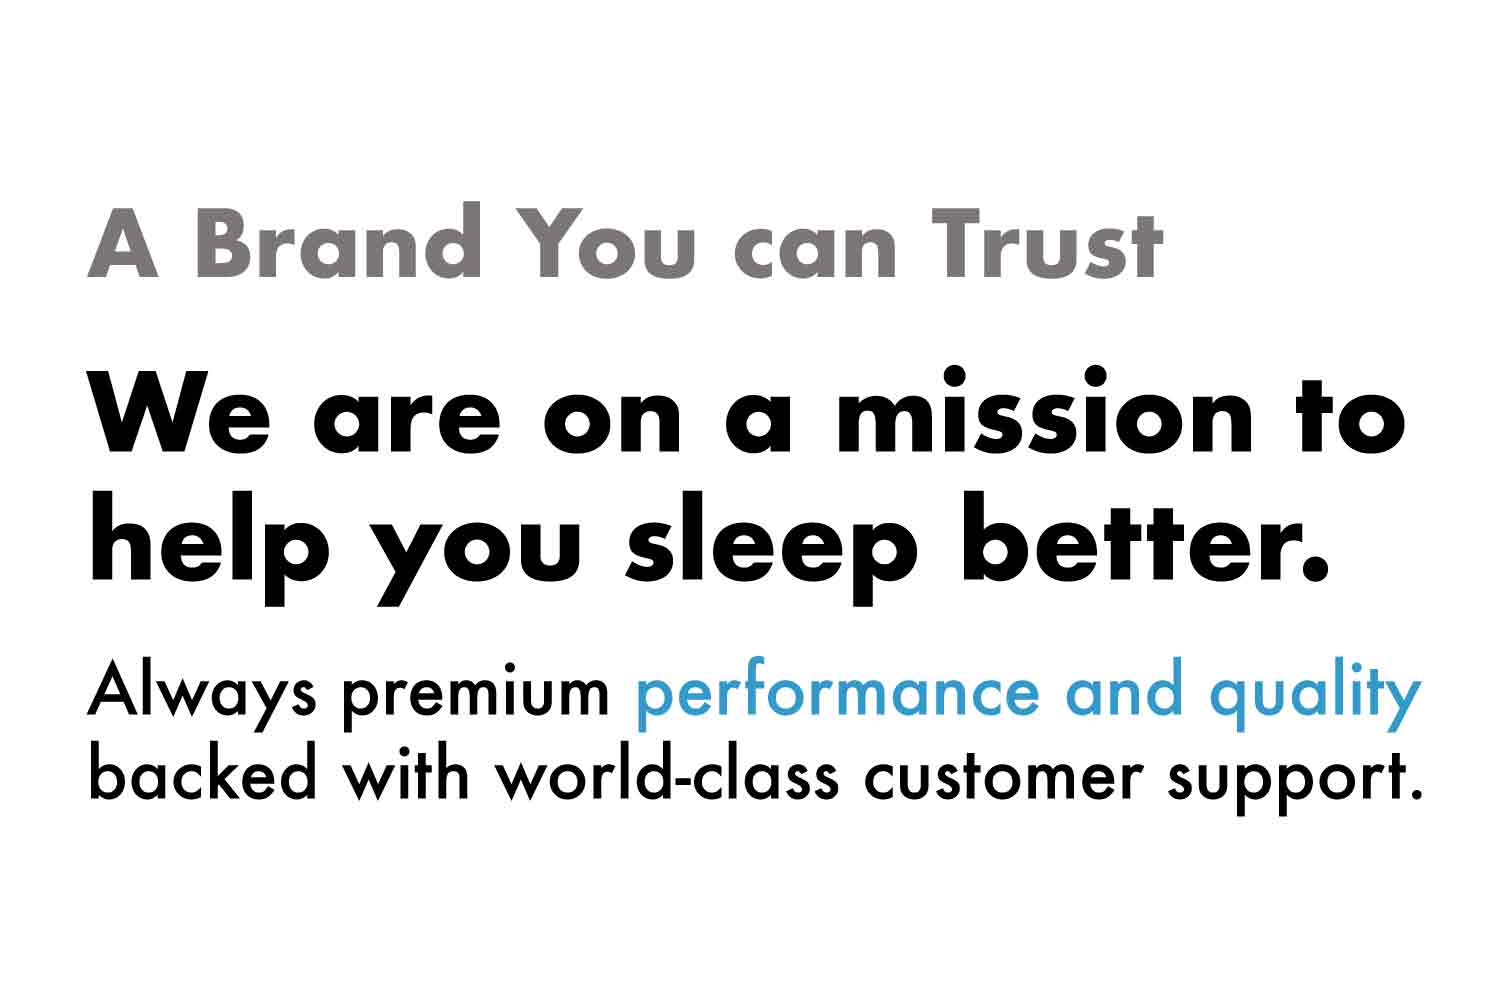 We are on a mission to help you sleep better